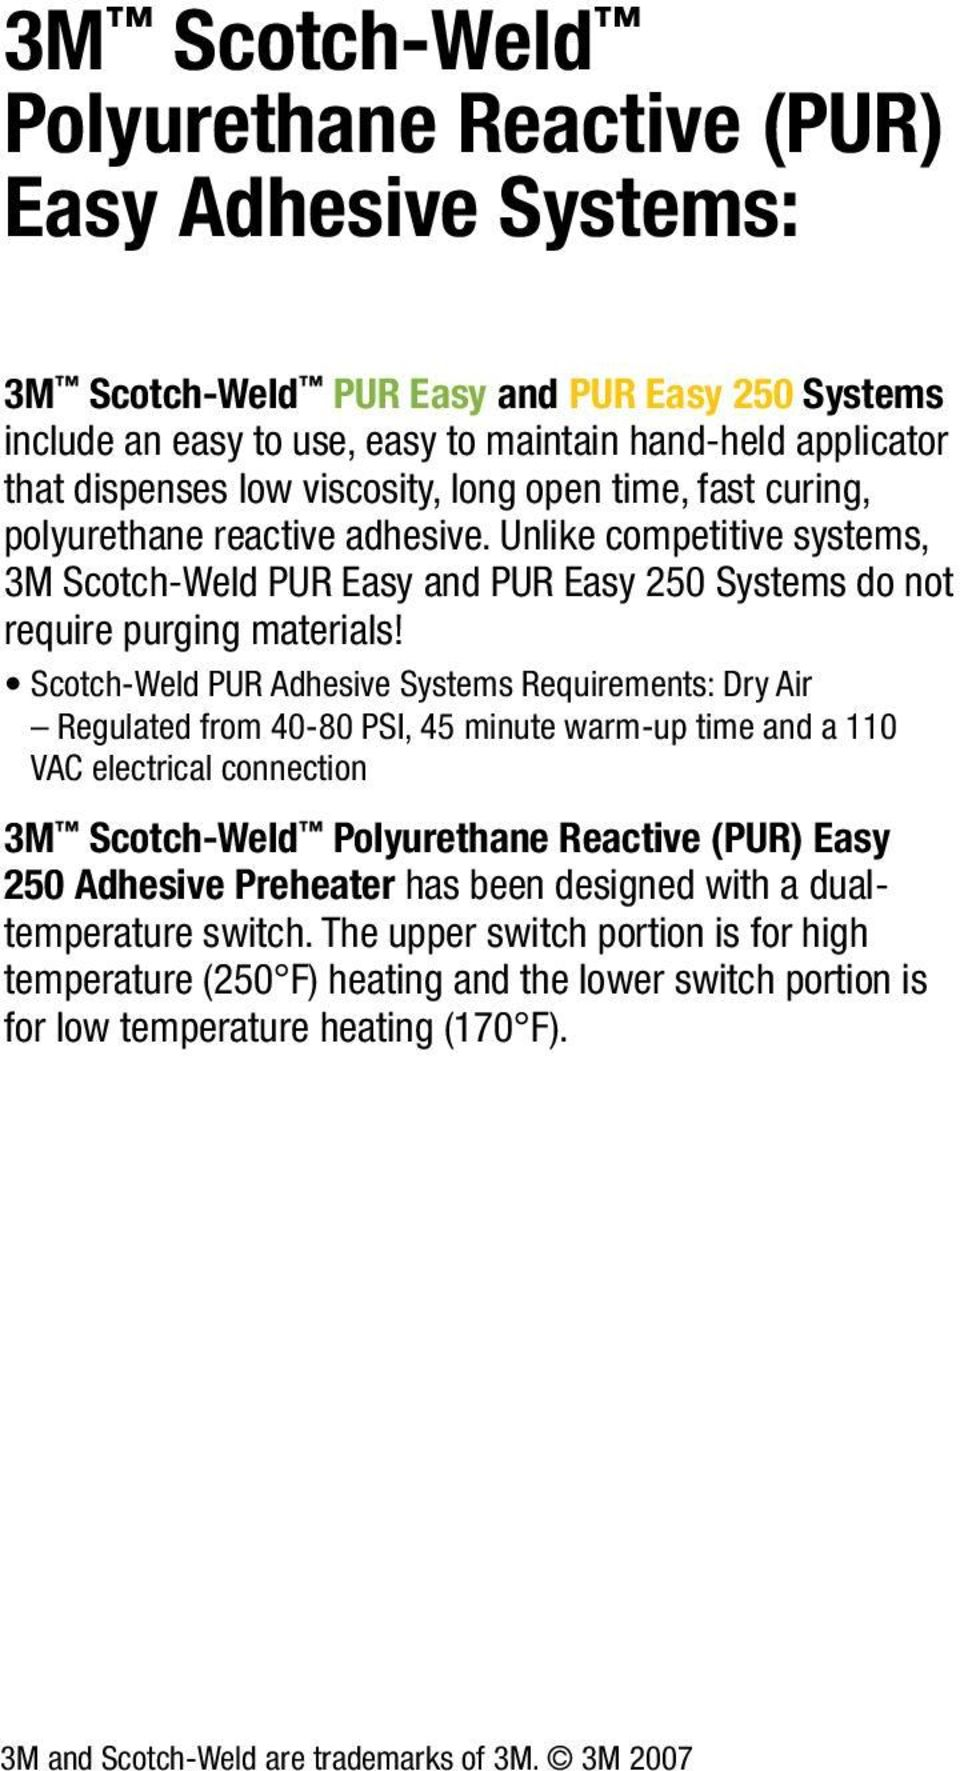 Scotch-Weld PUR Adhesive Systems Requirements: Dry Air Regulated from 40-80 PSI, 45 minute warm-up time and a 110 VAC electrical connection 3M Scotch-Weld Polyurethane Reactive (PUR) Easy 250